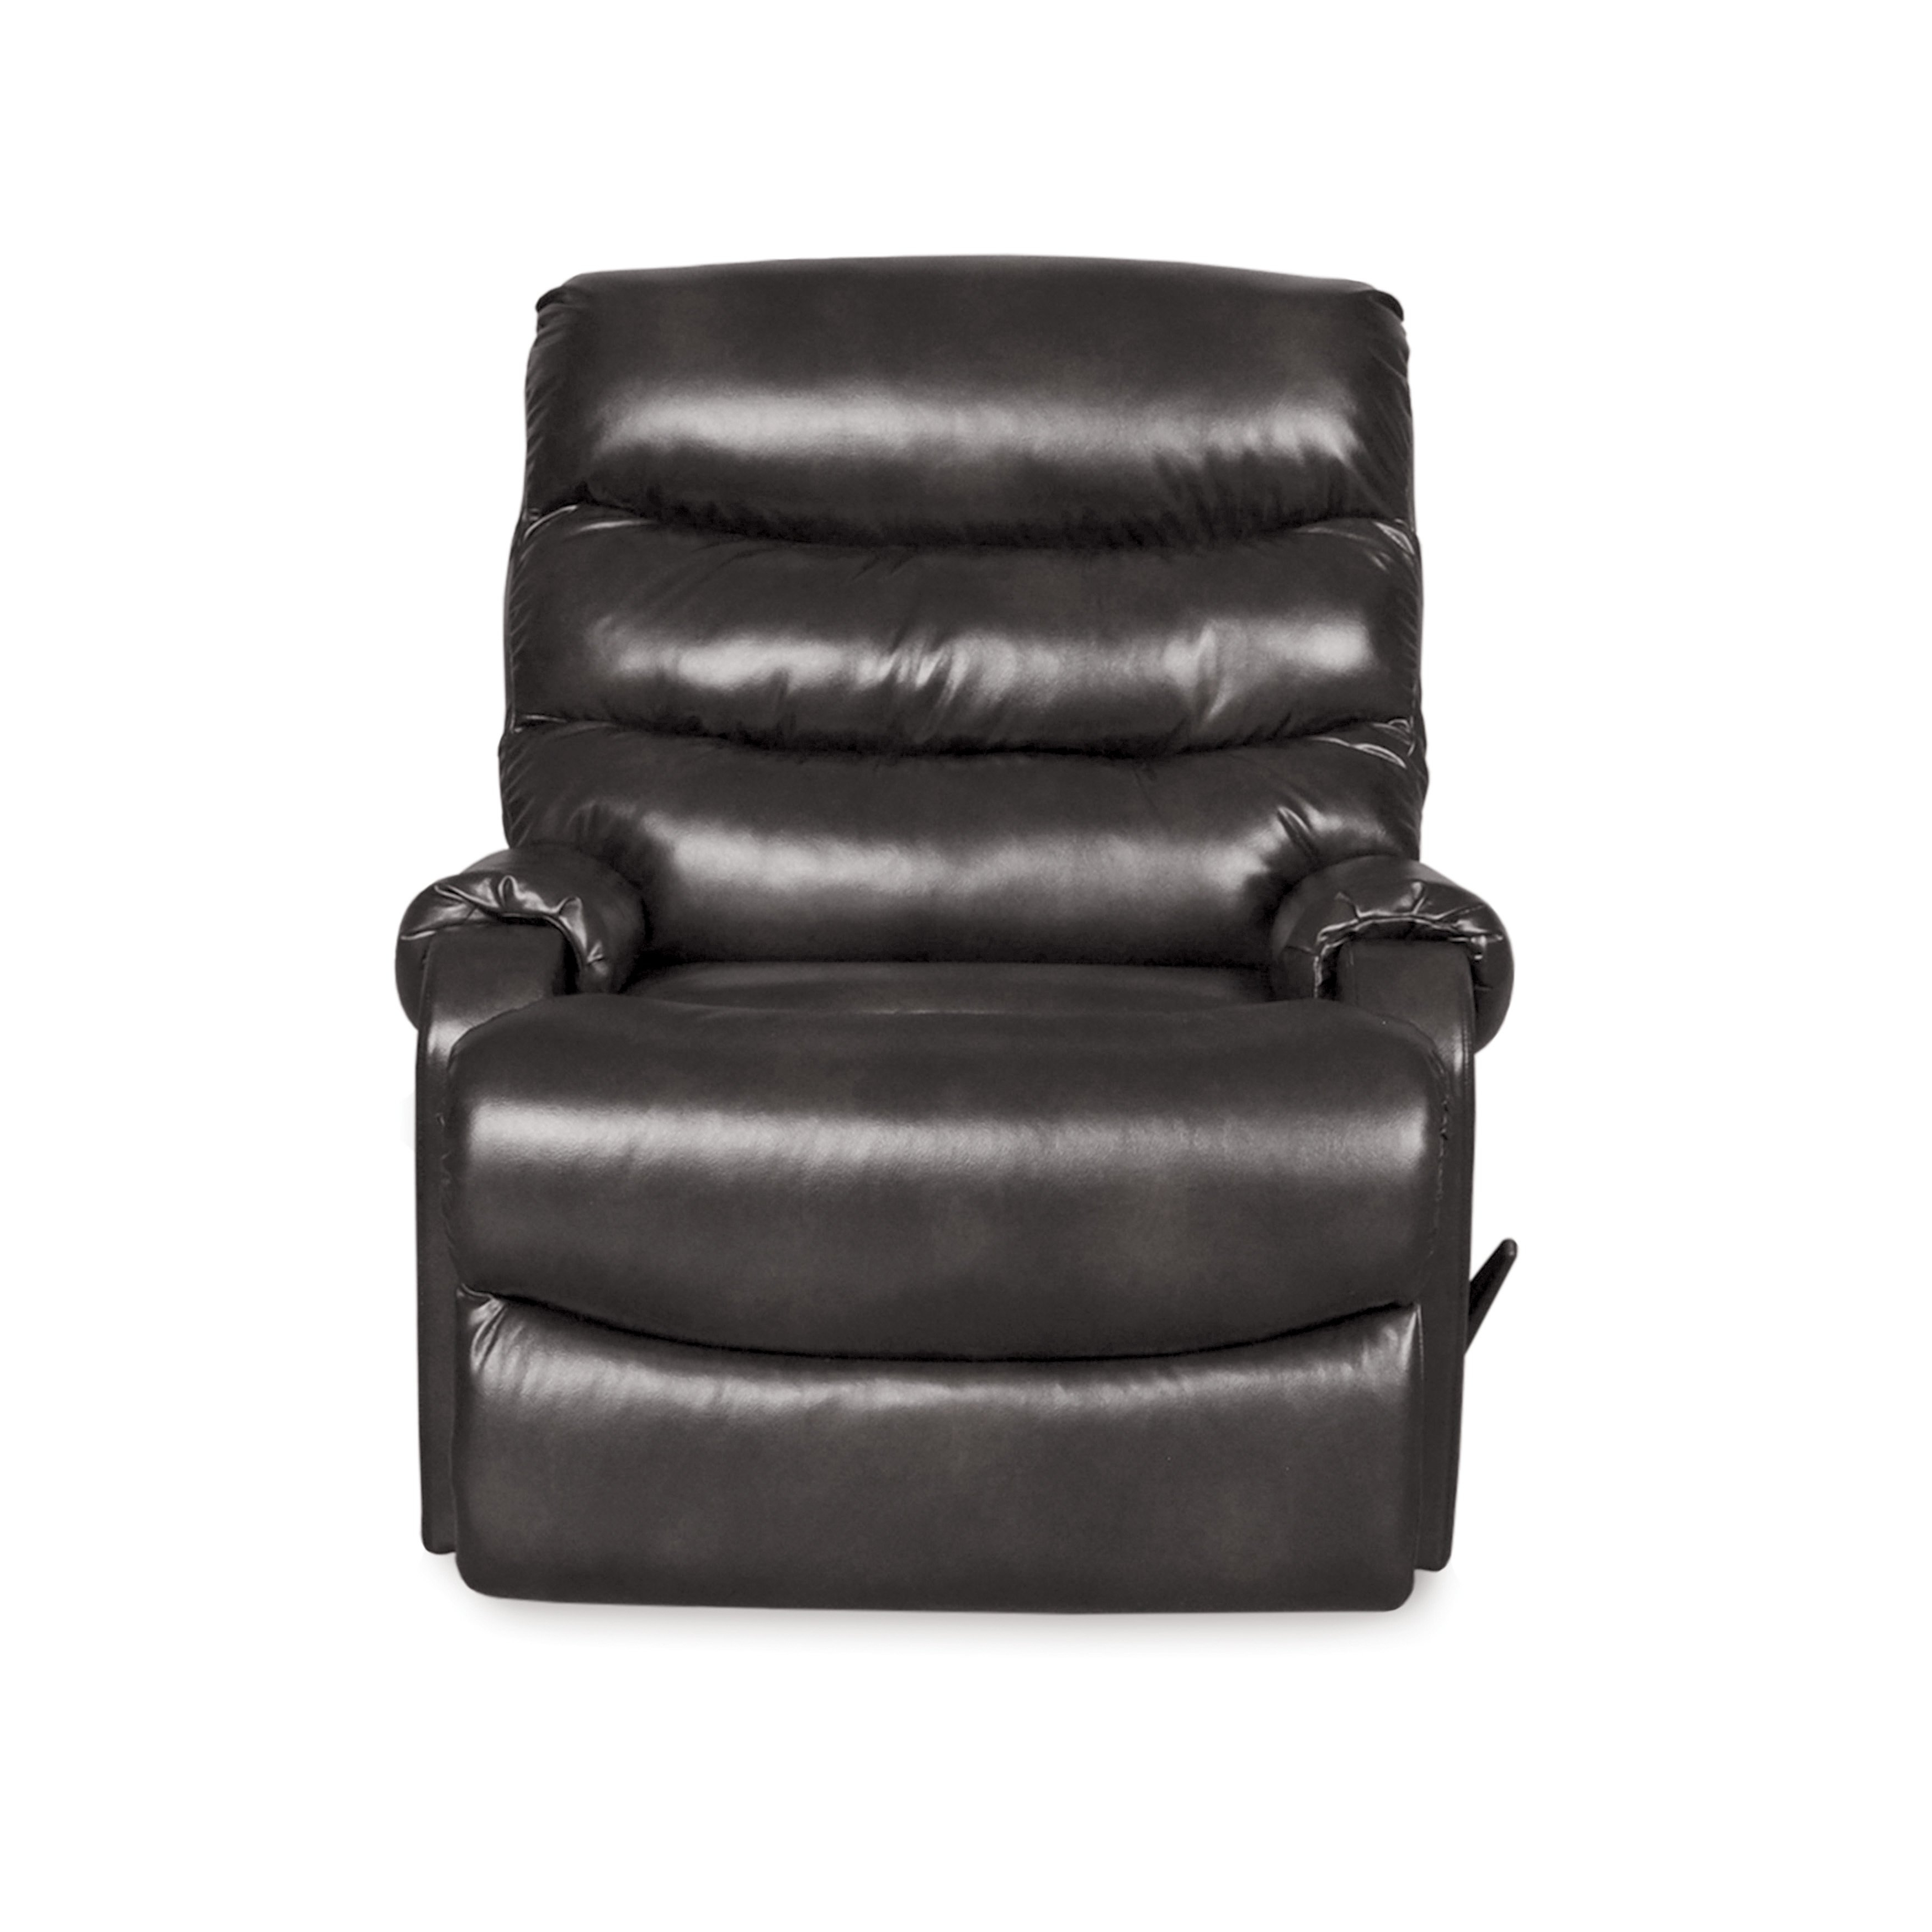 Latest Gannon Truffle Power Swivel Recliners Regarding Shop Bailey Glider Recliner – Free Shipping Today – Overstock (Gallery 7 of 20)